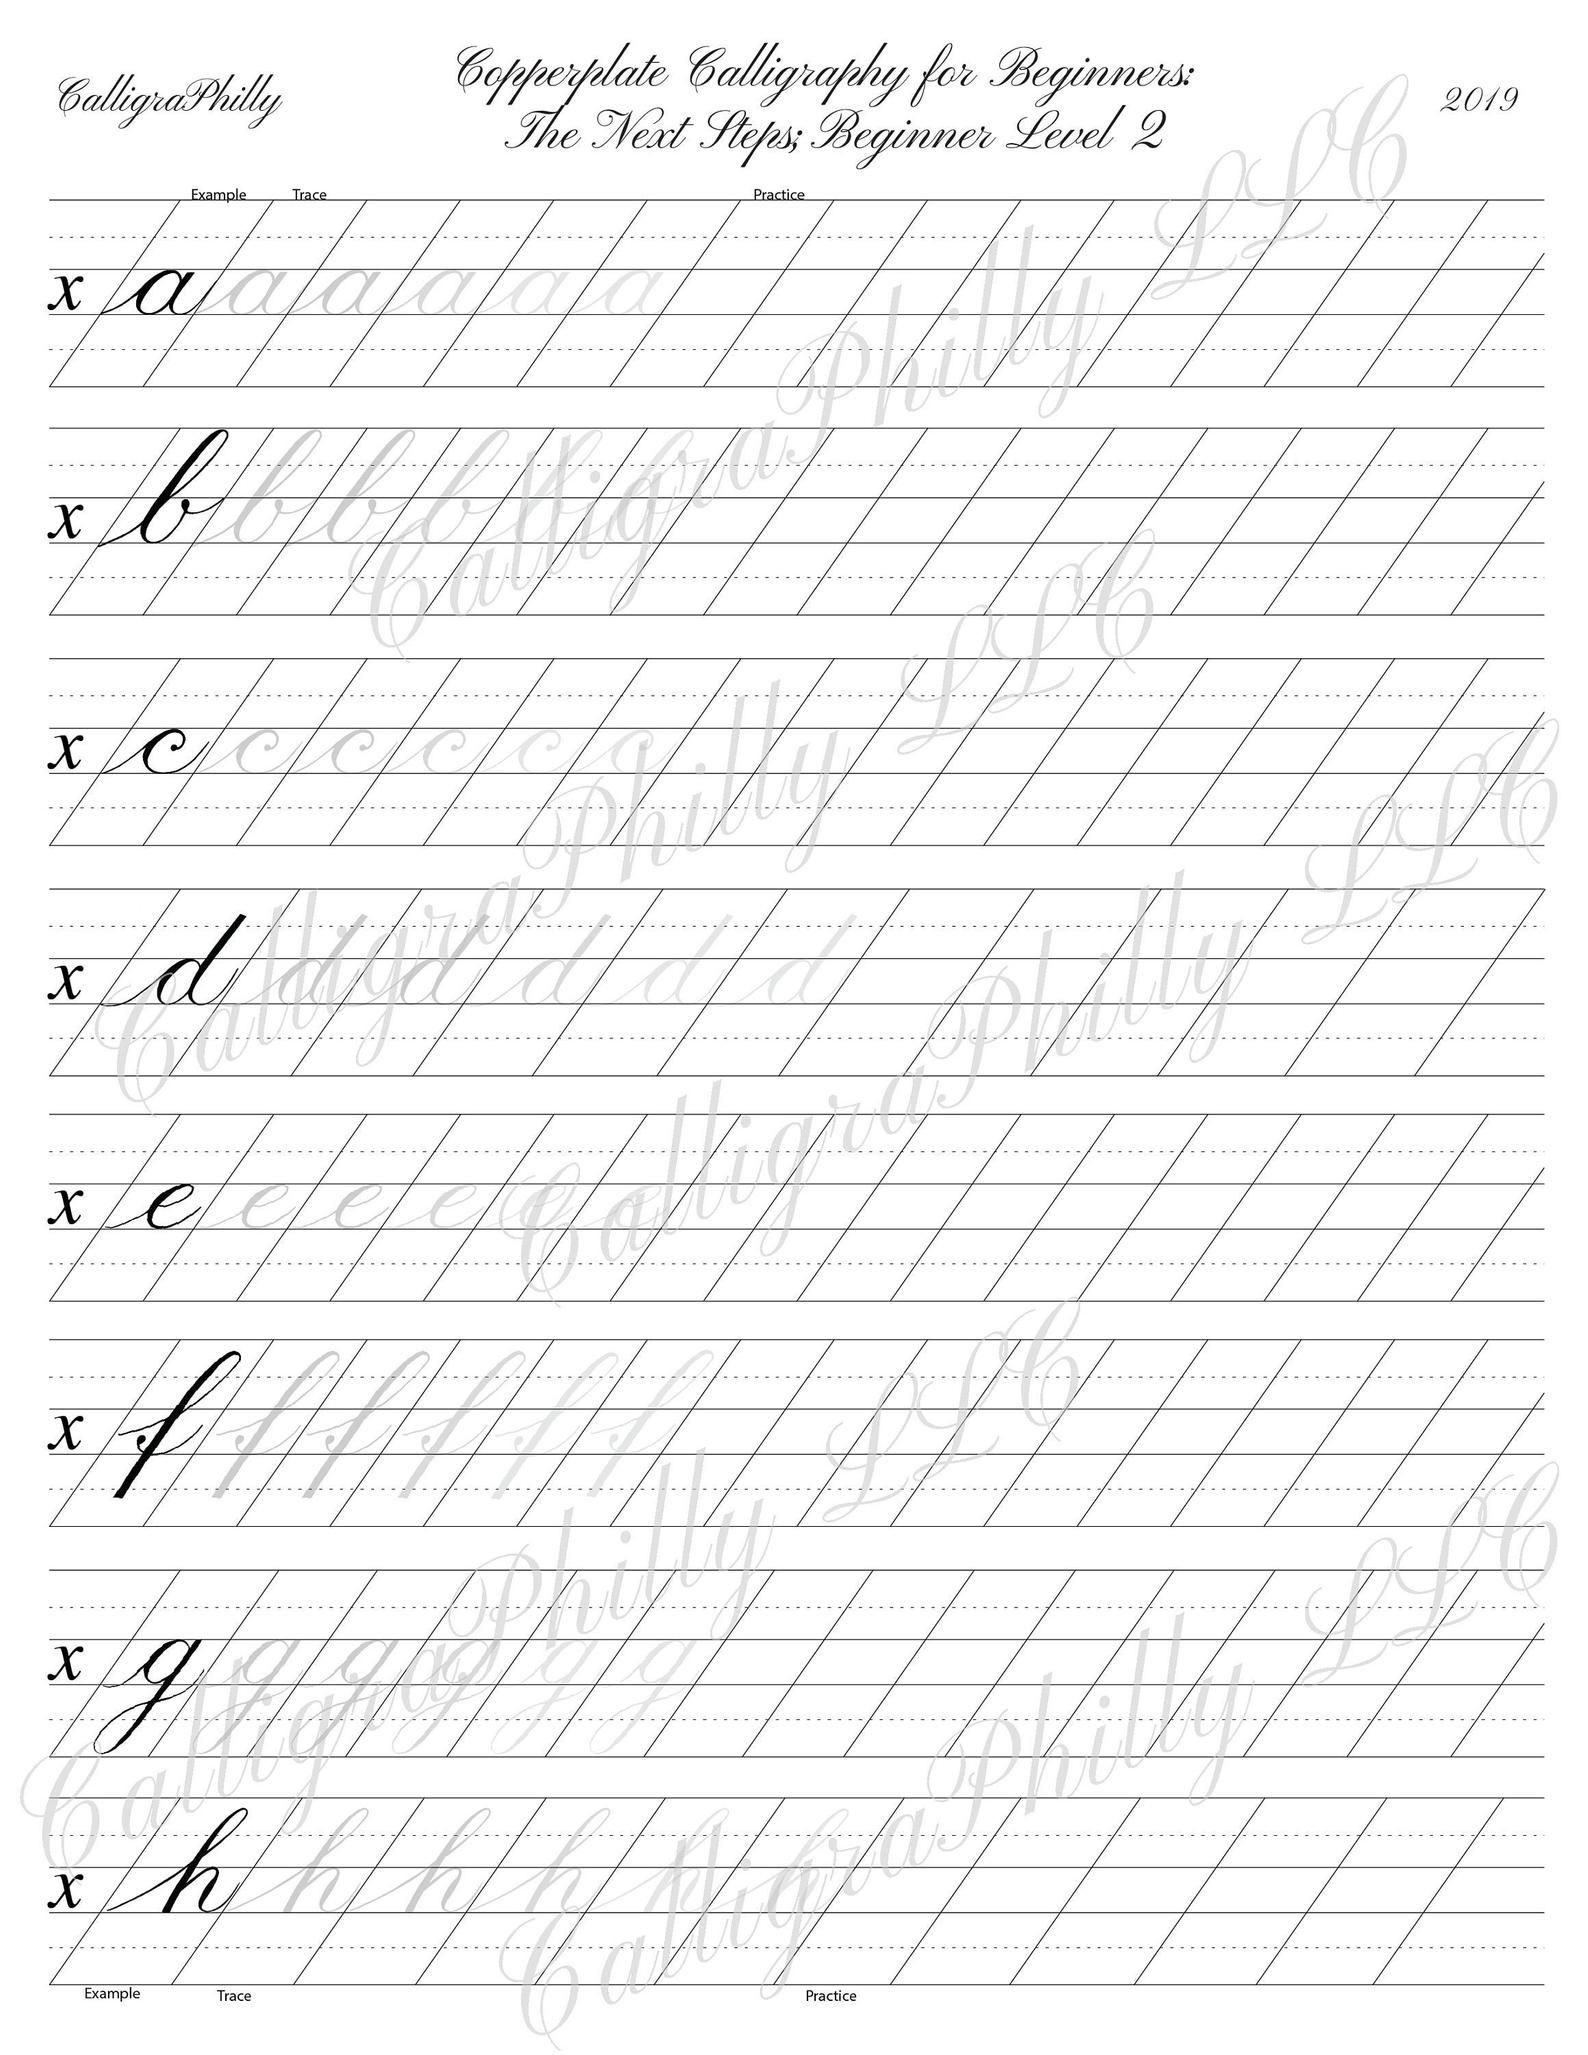 Beginner Level 2 Copperplate Lowercase Calligraphy